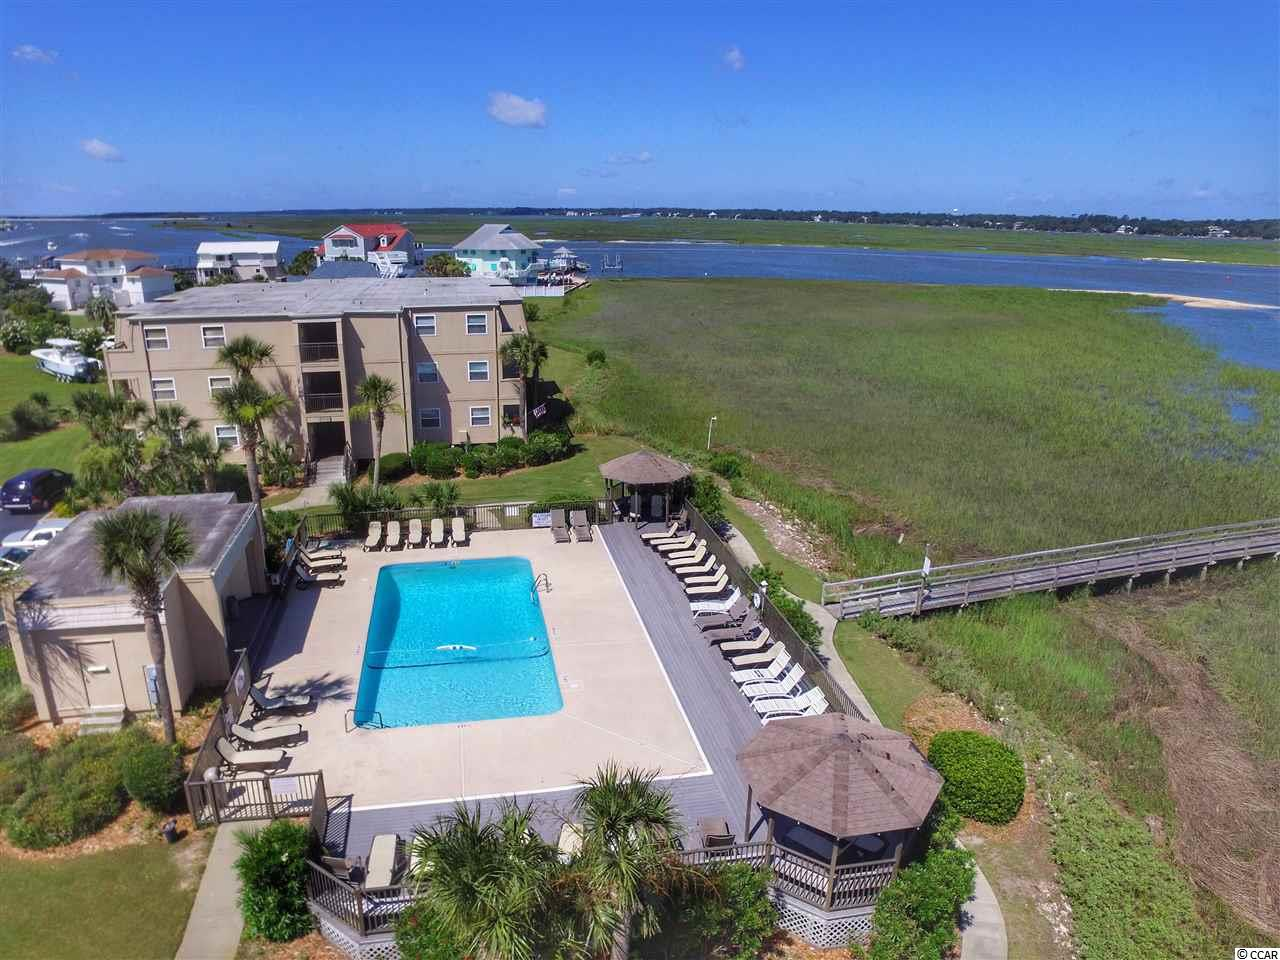 Inlet Pointe  condo now for sale